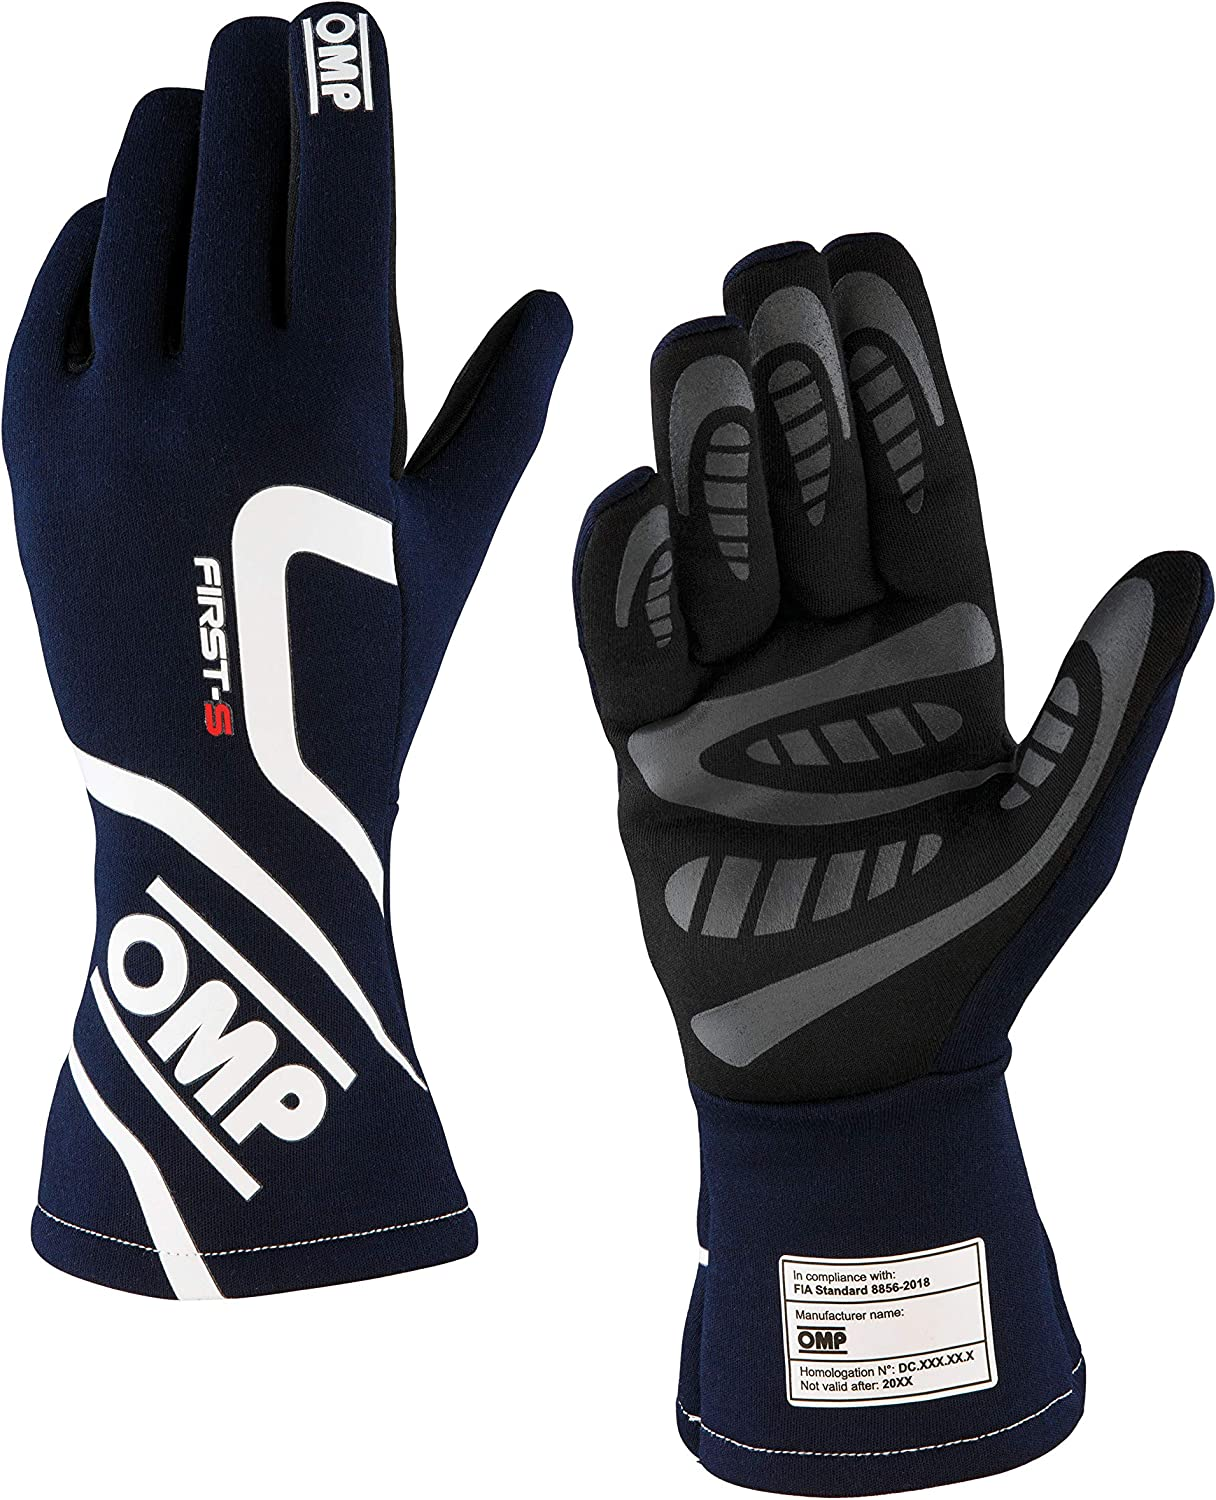 OMP IB//761A First-S Race Gloves Entry Level Fireproof Motorsport FIA 8856-2018